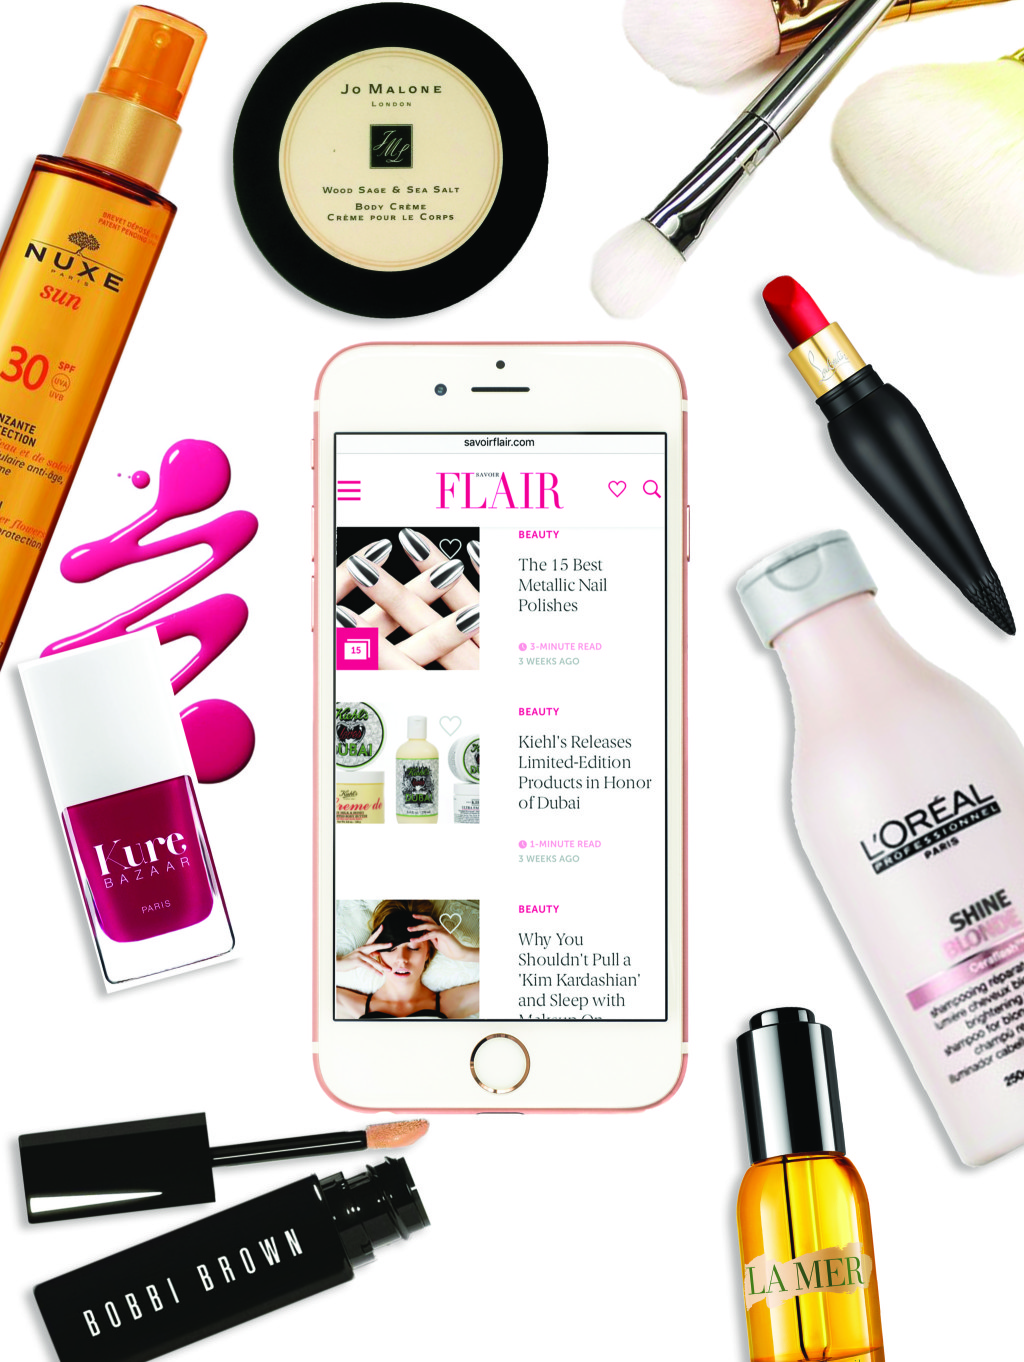 Best of Beauty 2015: The Year's Top Hair, Skin, Body, and Makeup Products